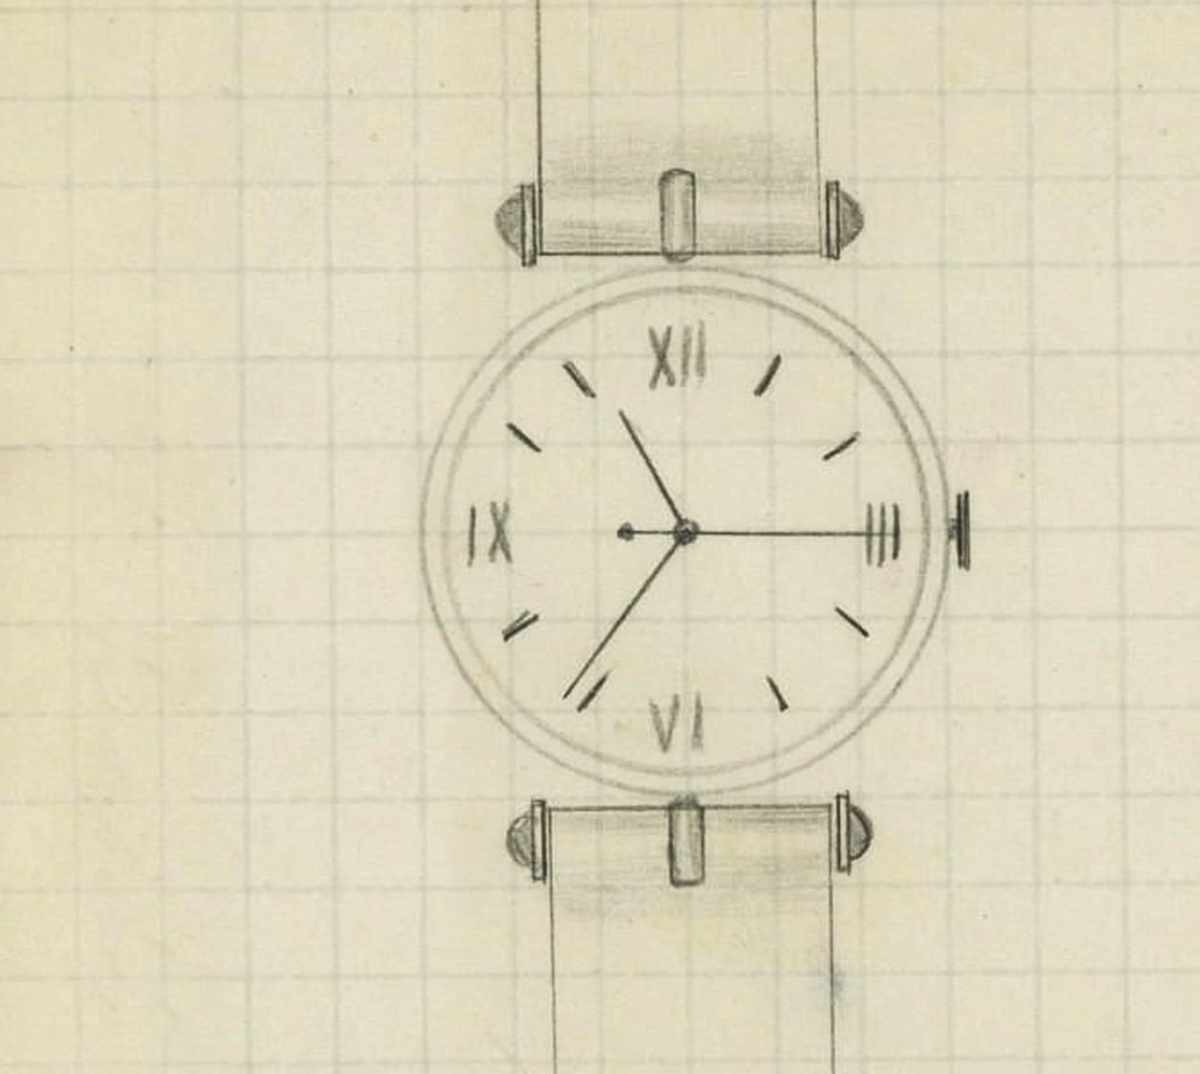 The First Sketch of the Pierre Arpels watch